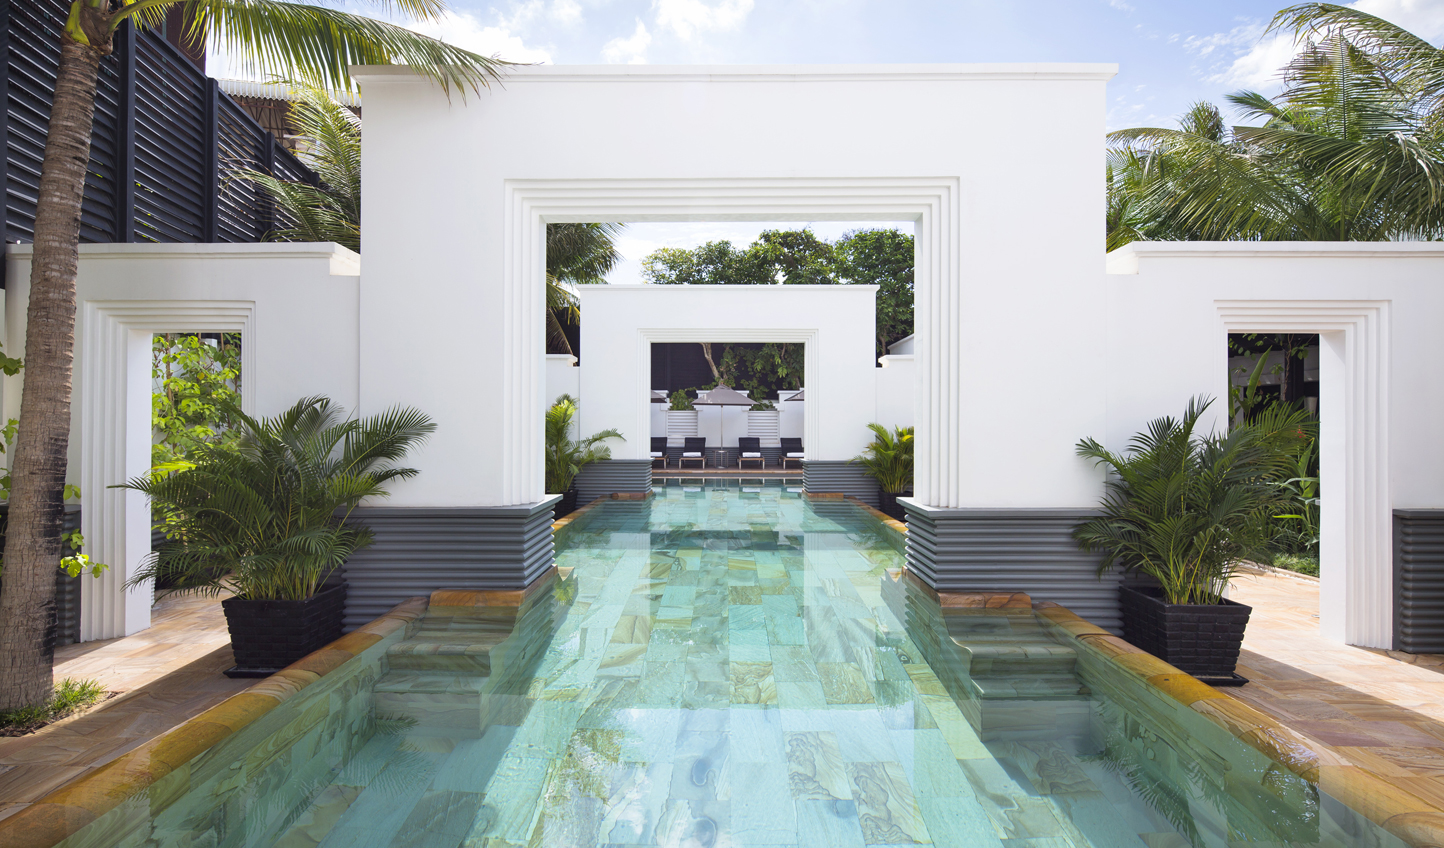 Cool off from the tropical heat in the reinvigorating waters of the saltwater pool